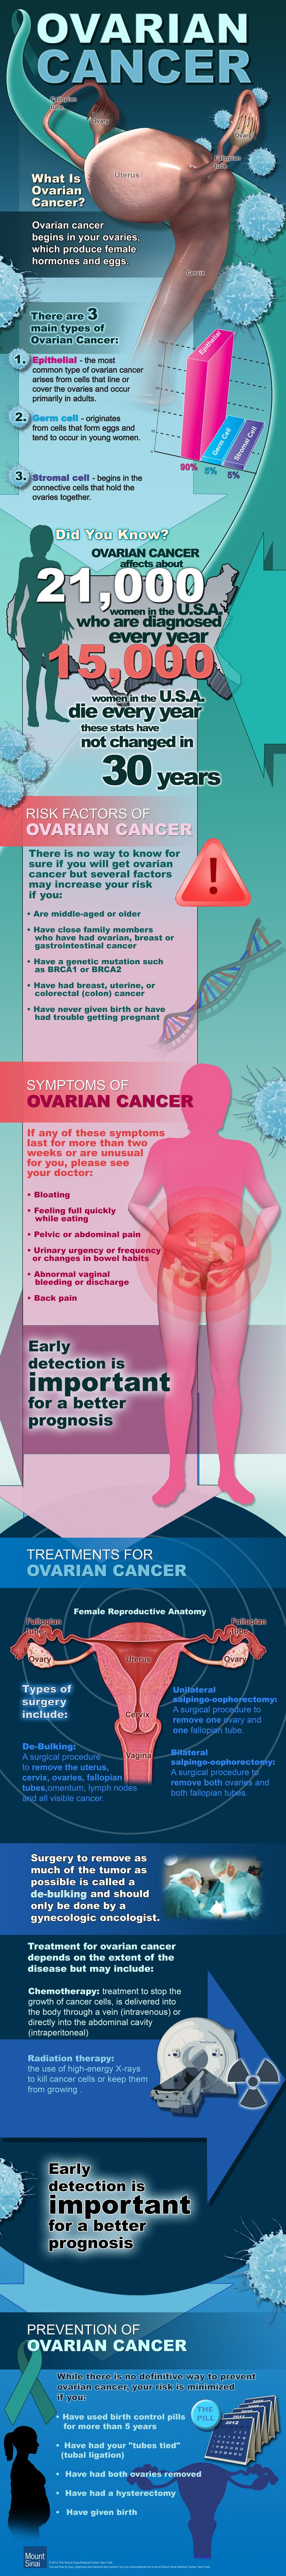 Ovarian Cancer: What is Ovarian Cancer? Learn more about this disease which is often called the 'silent killer.'